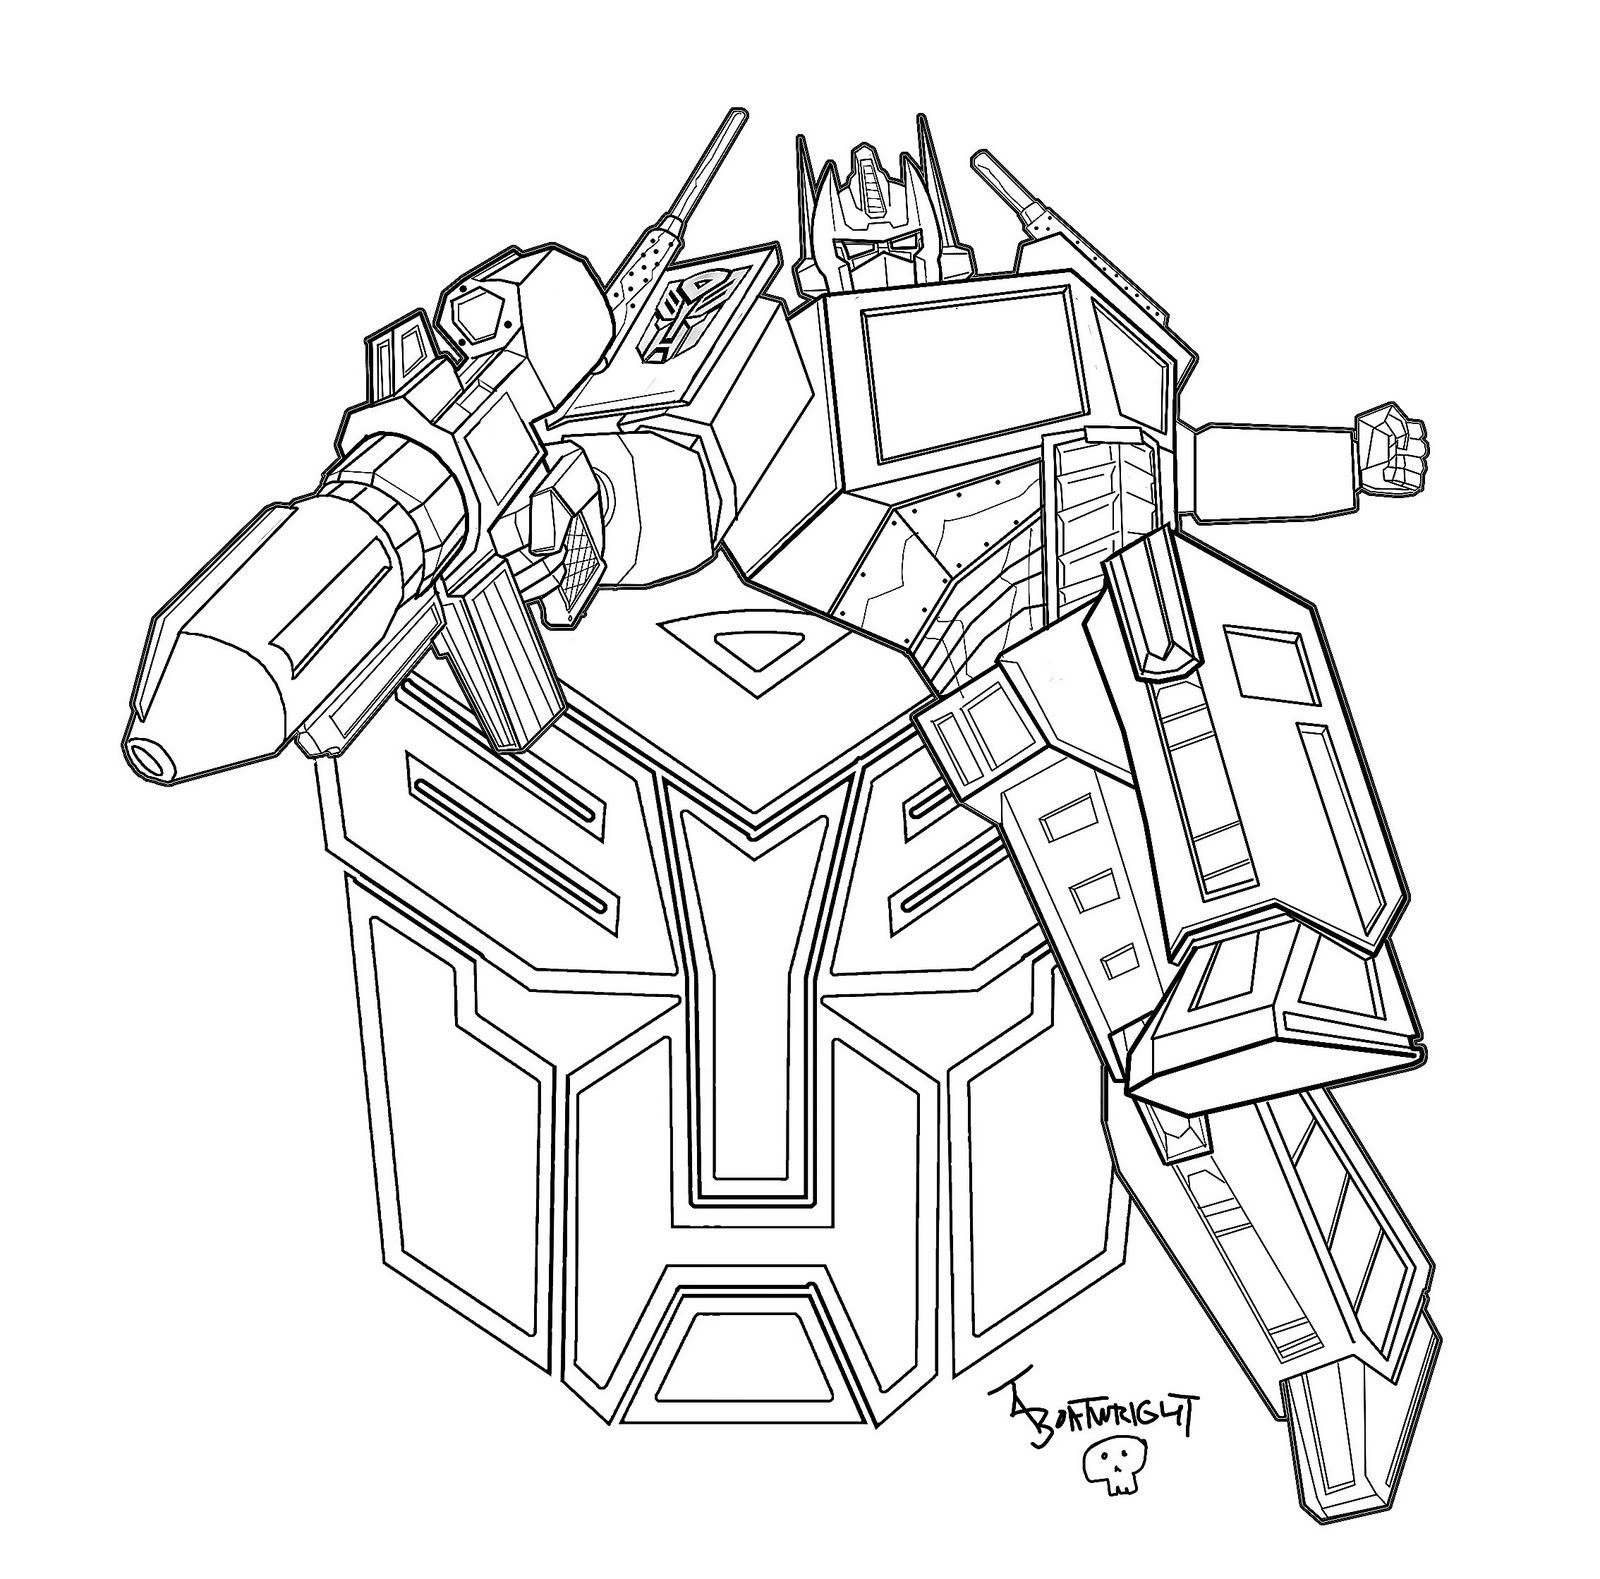 optimus prime transformers coloring pages disney coloring pages - Transformers Coloring Pages